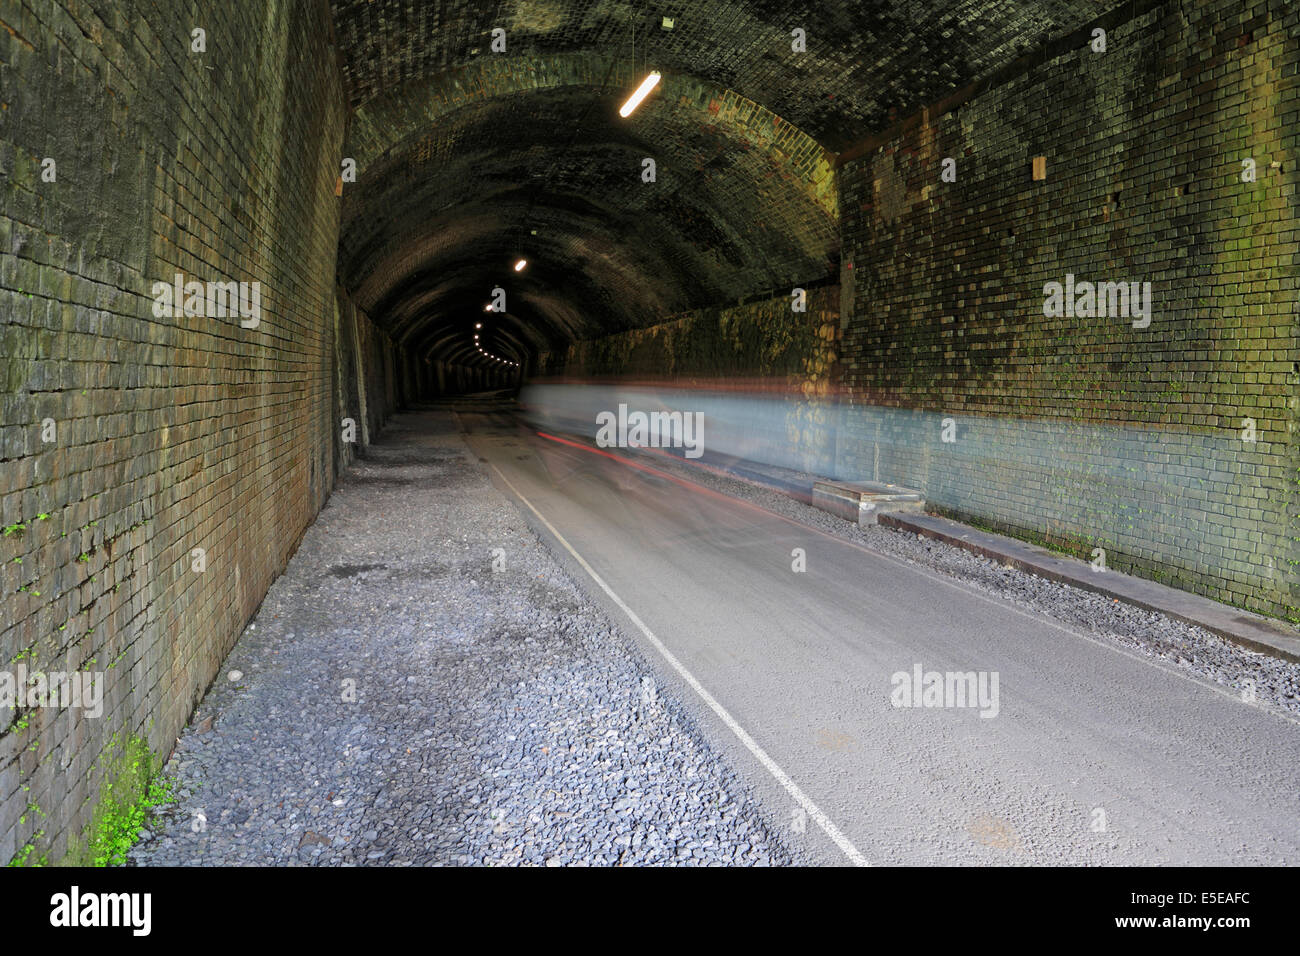 Cyclists motion blur in Litton Tunnel on the Monsal Trail, Derbyshire, Peak District National Park, England, UK. - Stock Image